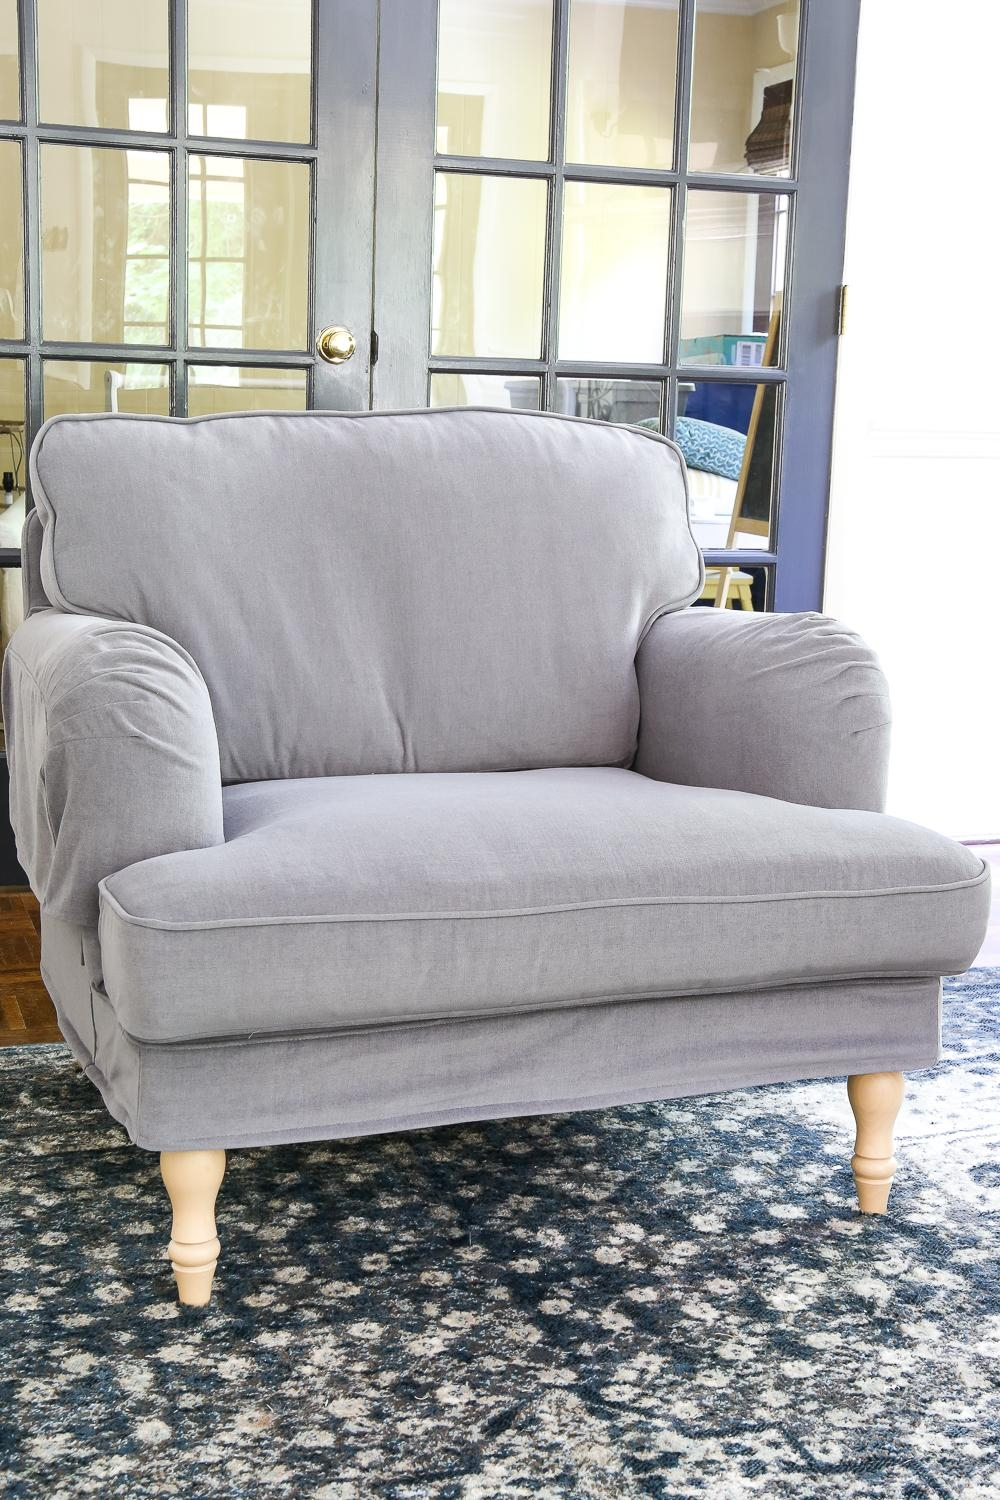 Ikea's New Sofa And Chairs And How To Keep Them Clean – Bless'er House Intended For Comfortable Sofas And Chairs (View 3 of 20)